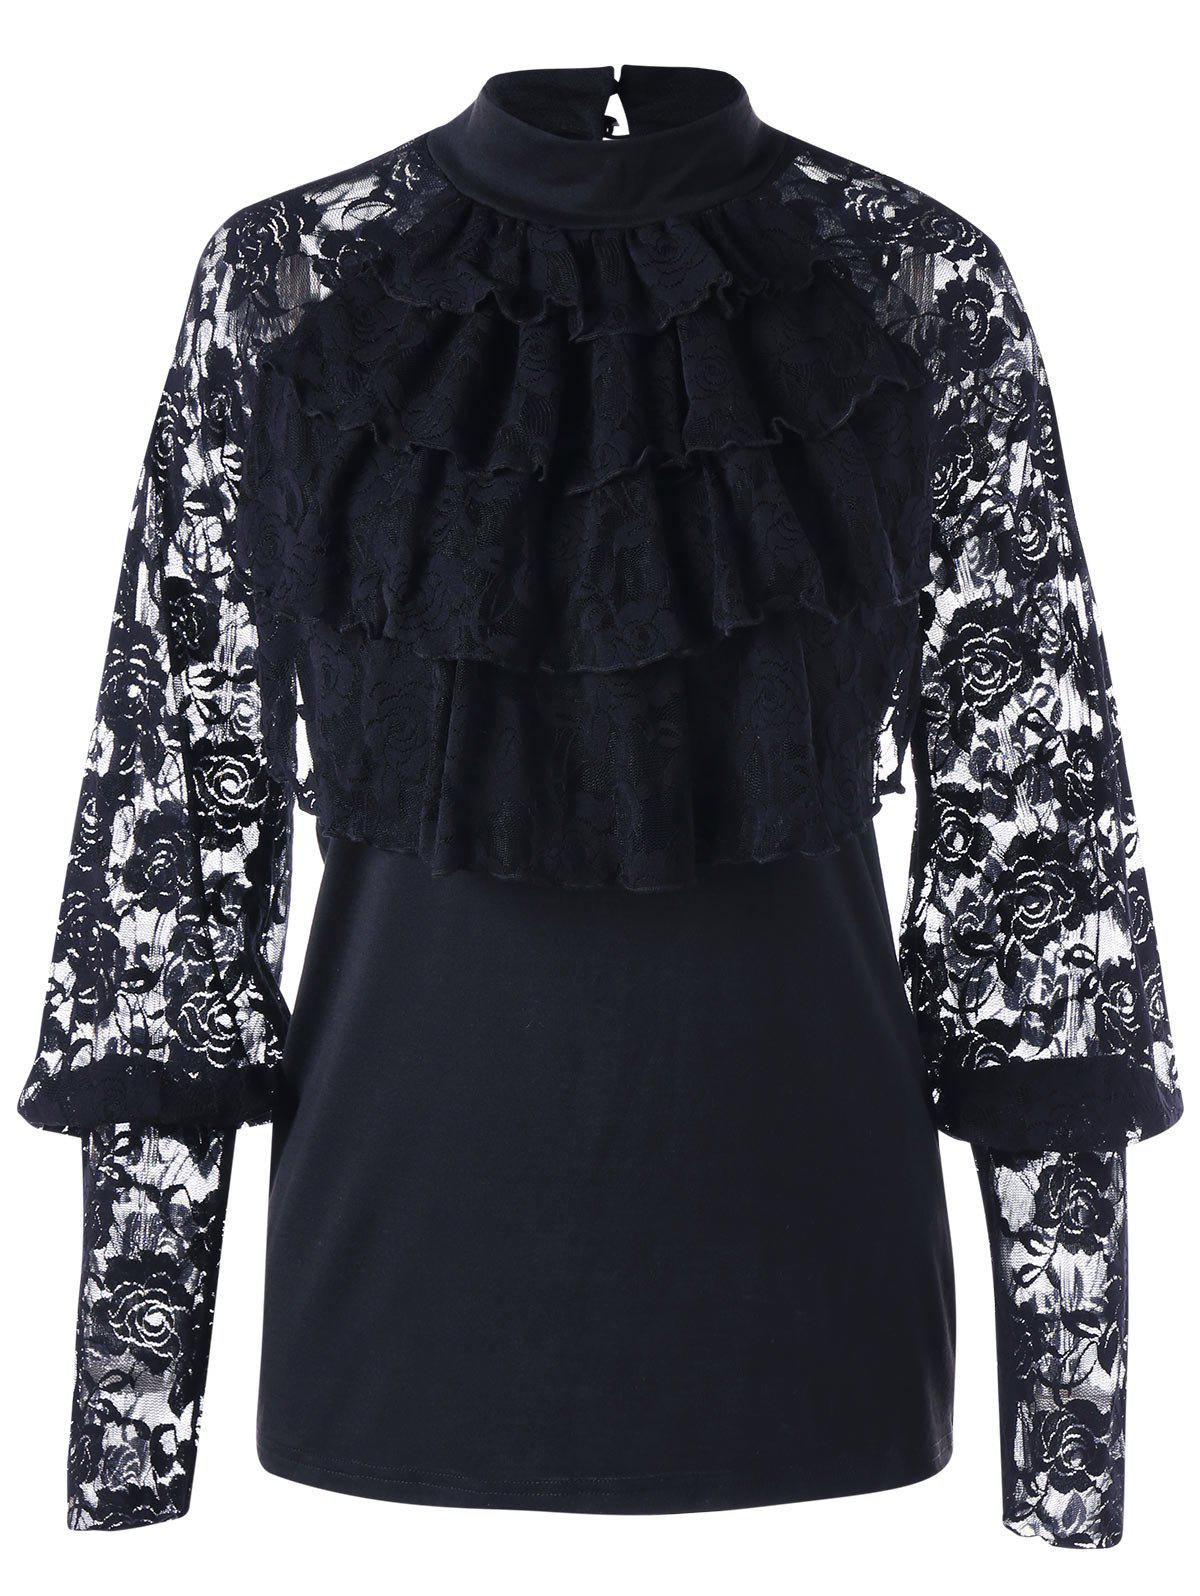 Outfit Halloween Lace Trim Layered Ruffle Top